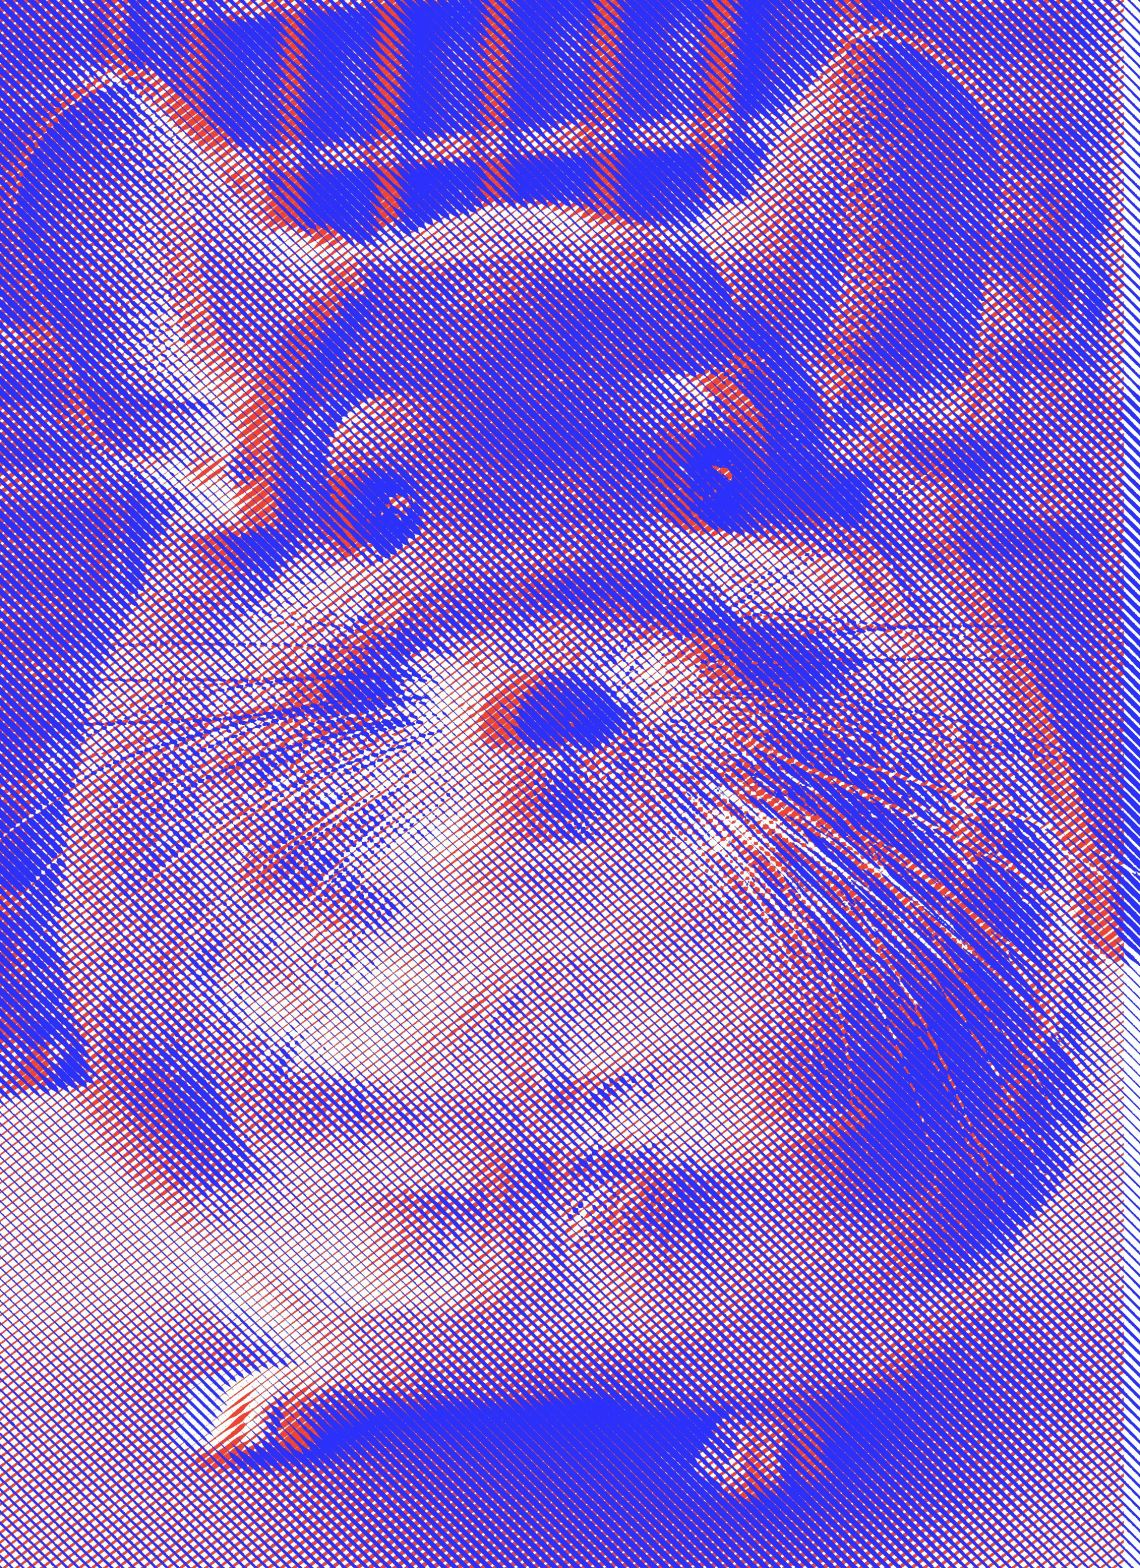 Chinchilla in 3D